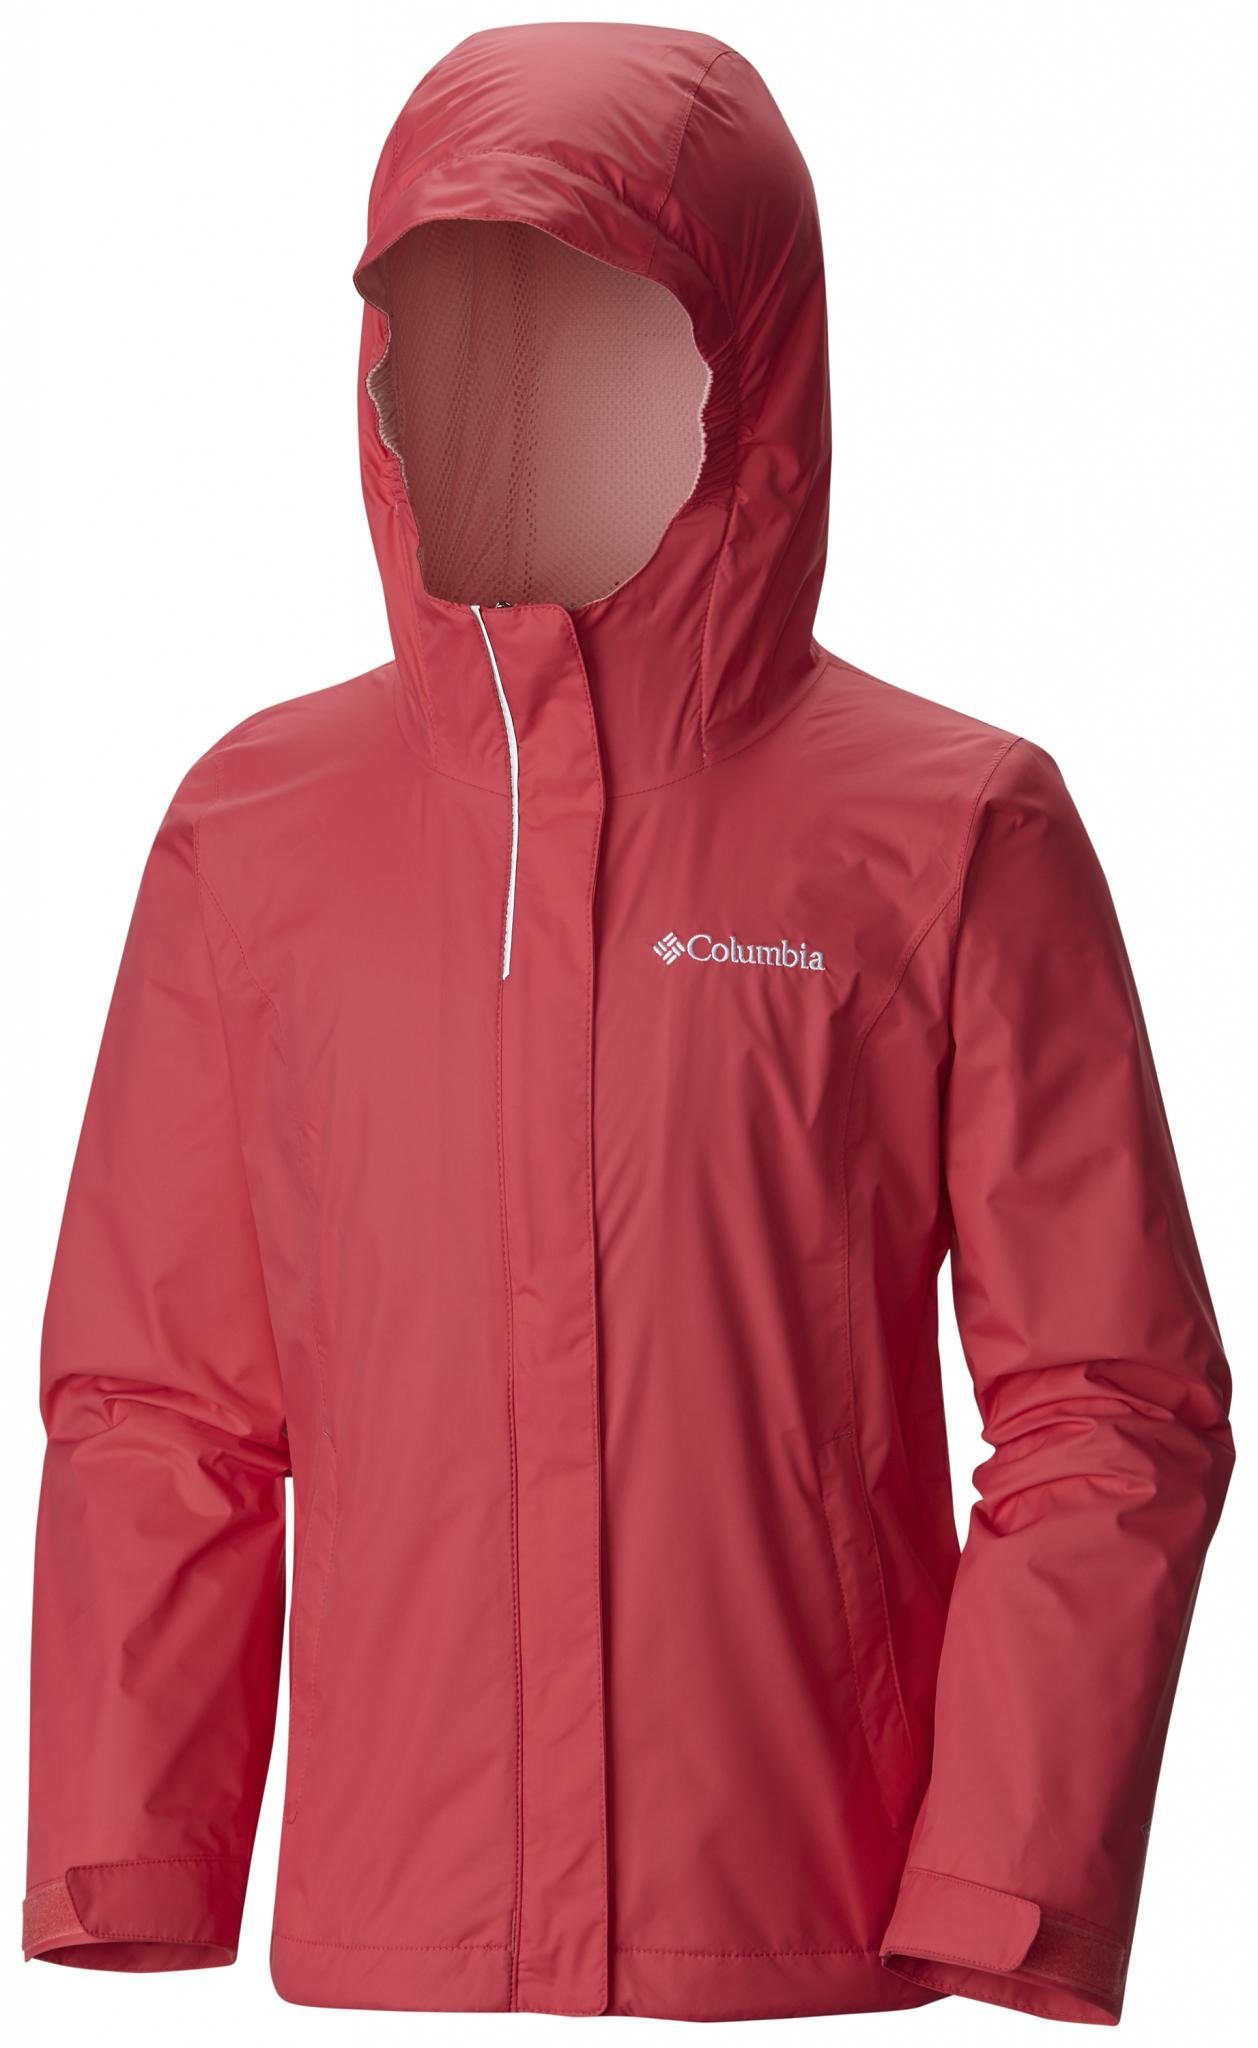 Columbia Outdoorjacke »Arcadia Jacket Girls«